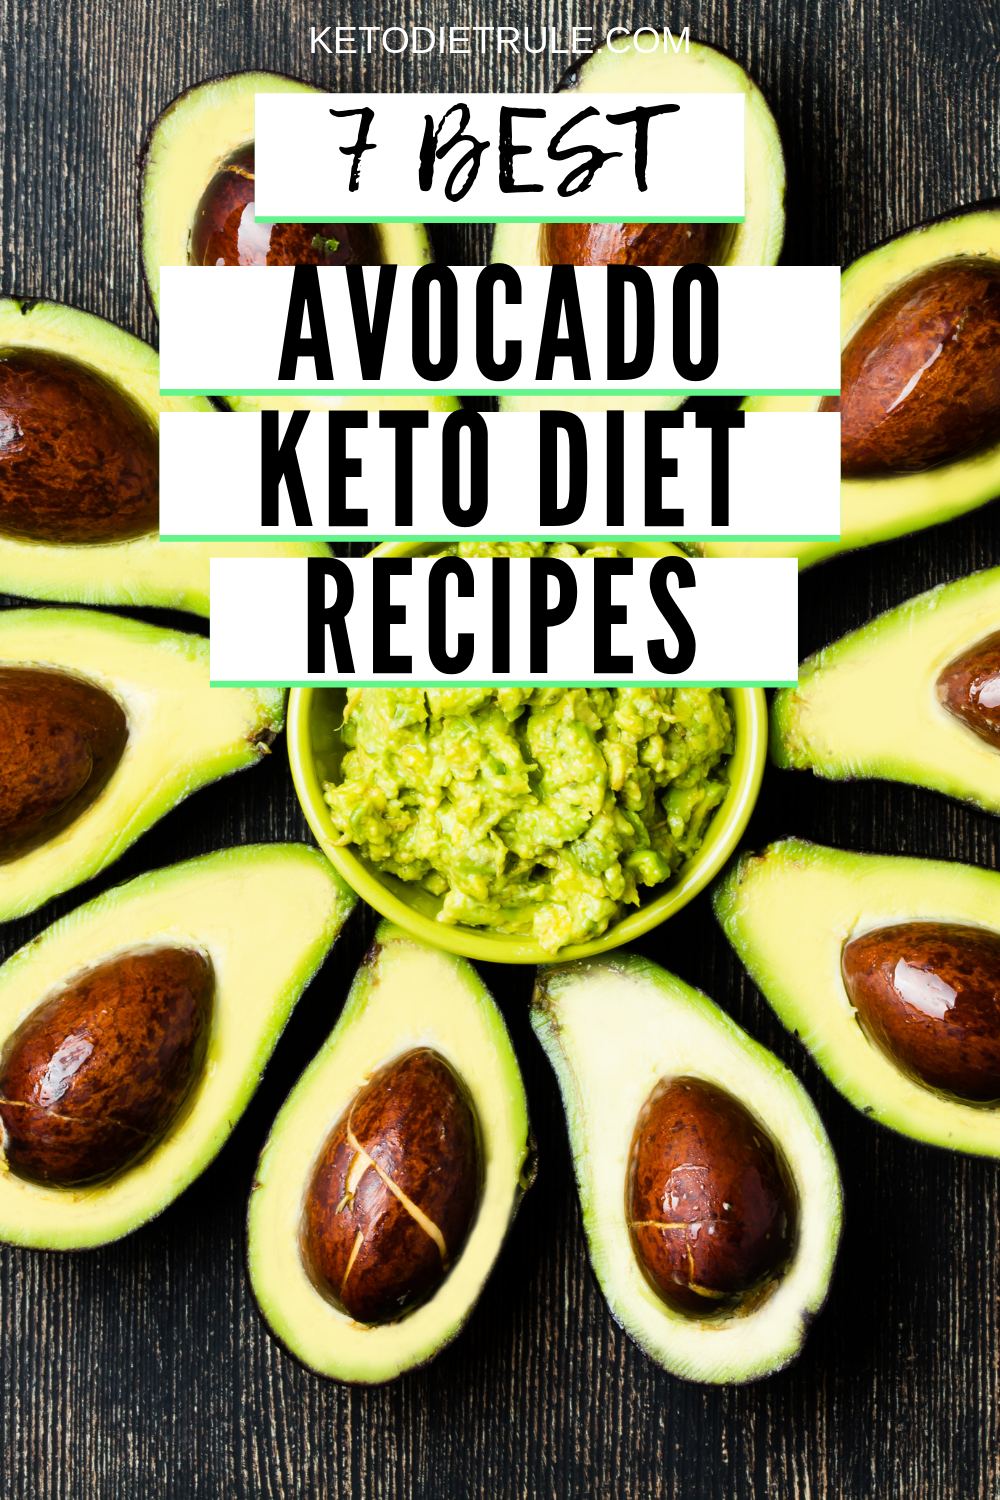 Avocado Recipes 14 Delicious Ways To Eat An Avocado Keto Diet Rule Ketogenic Recipes Avocado Recipes Keto Diet Food List